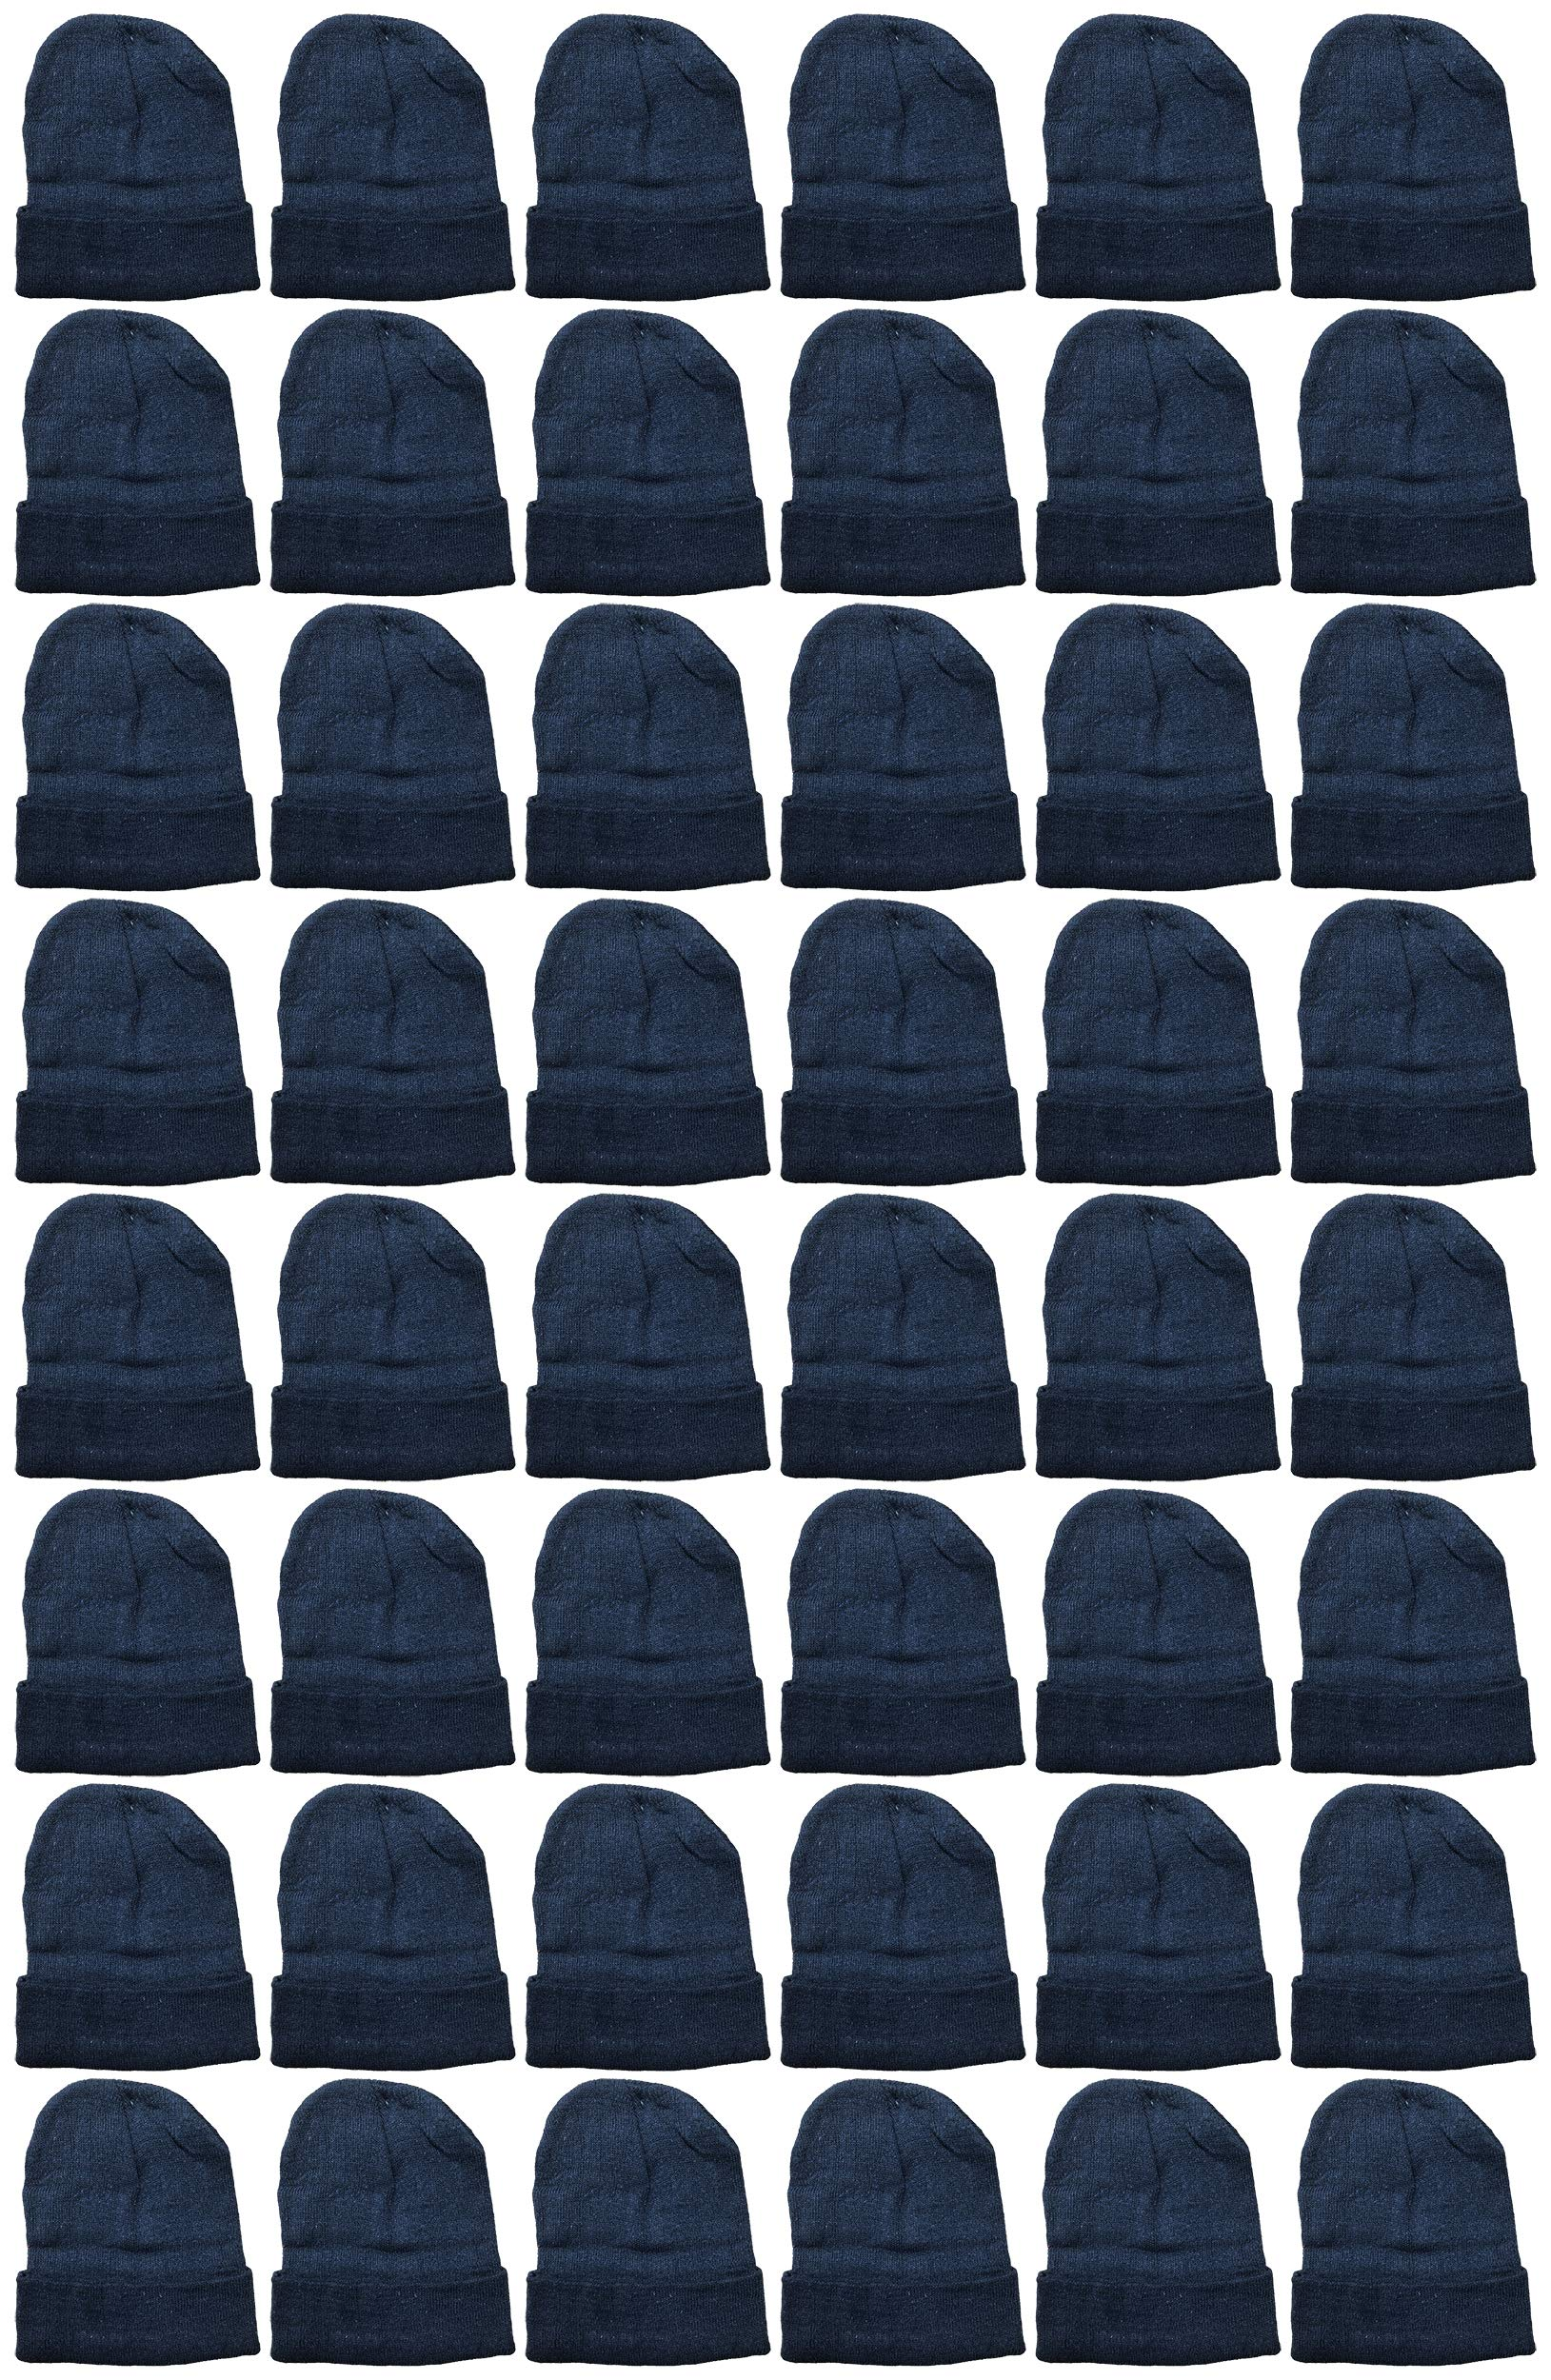 YACHT & SMITH 48 Pack Wholesale Bulk Winter Thermal Beanies Skull Caps, Thermal Gloves Unisex (Solid Black Beanie) by YACHT & SMITH